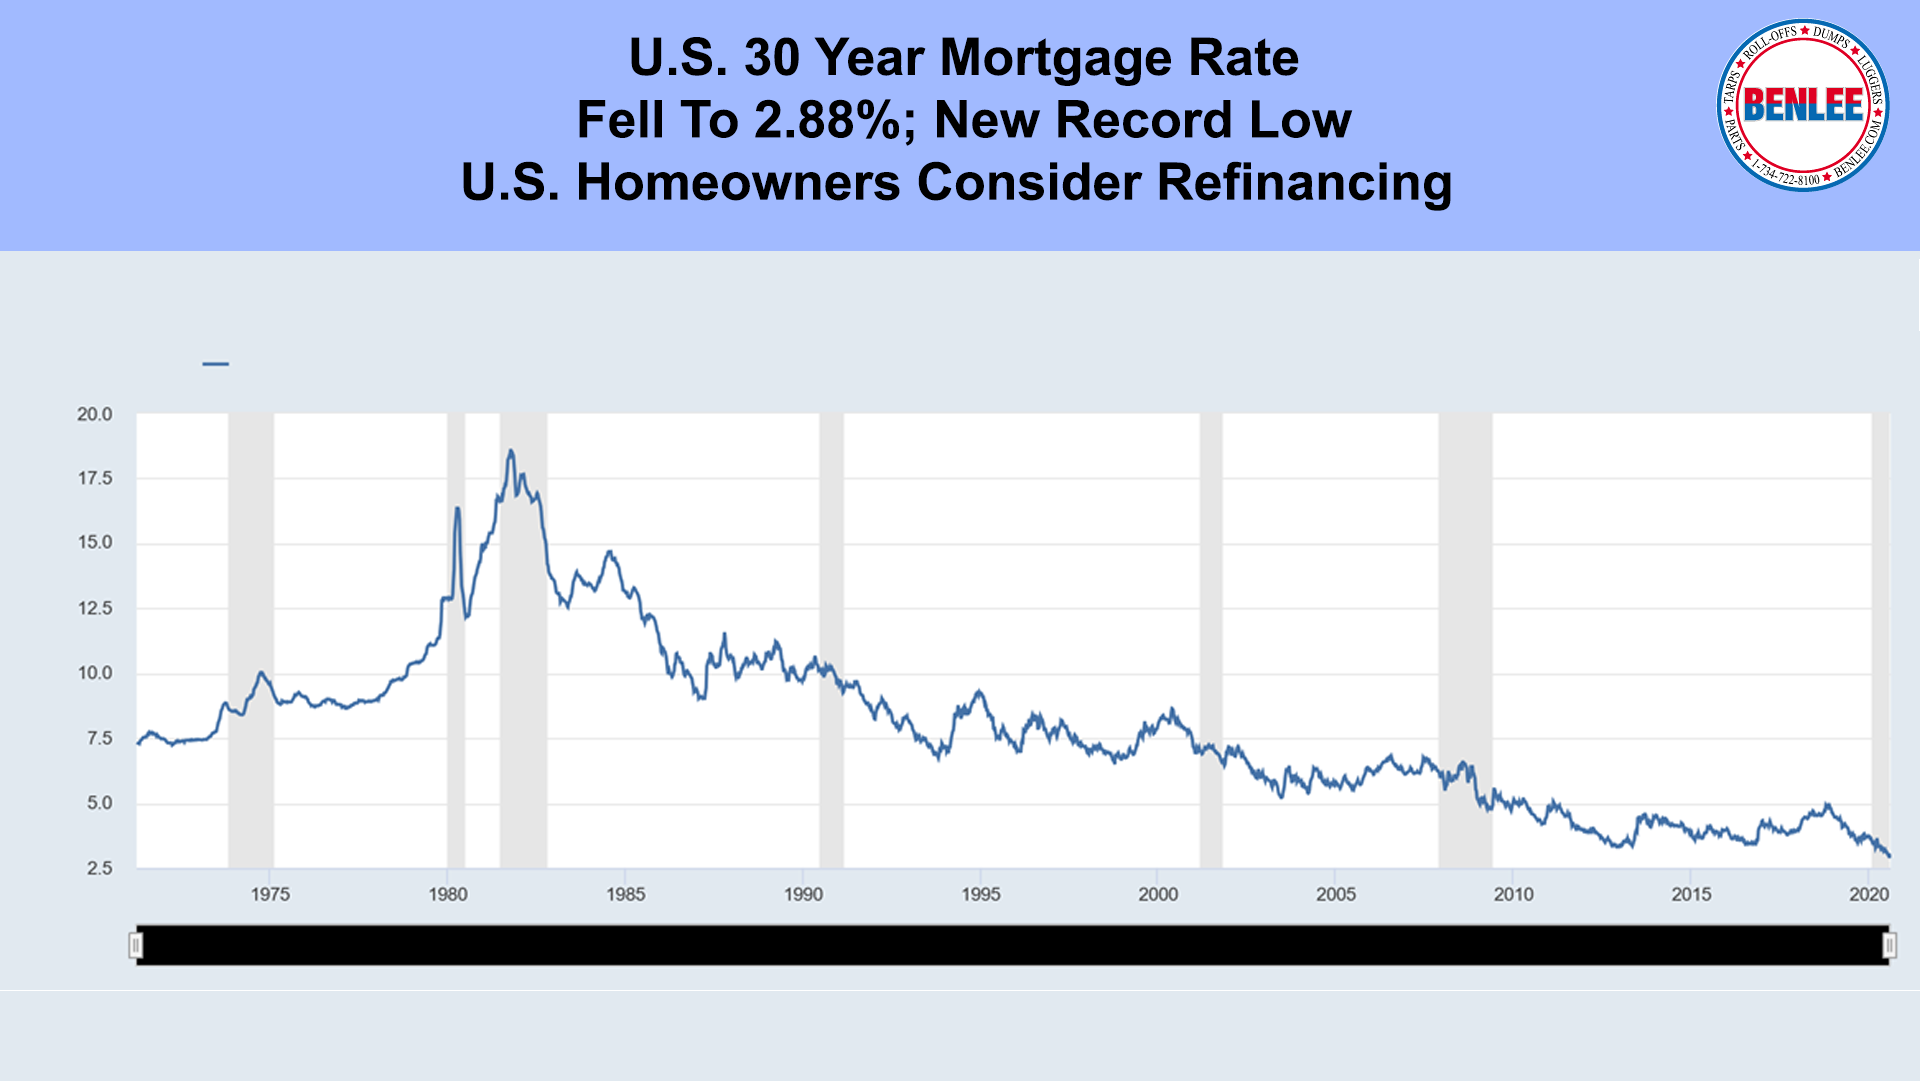 U.S. 30 Year Mortgage Rate